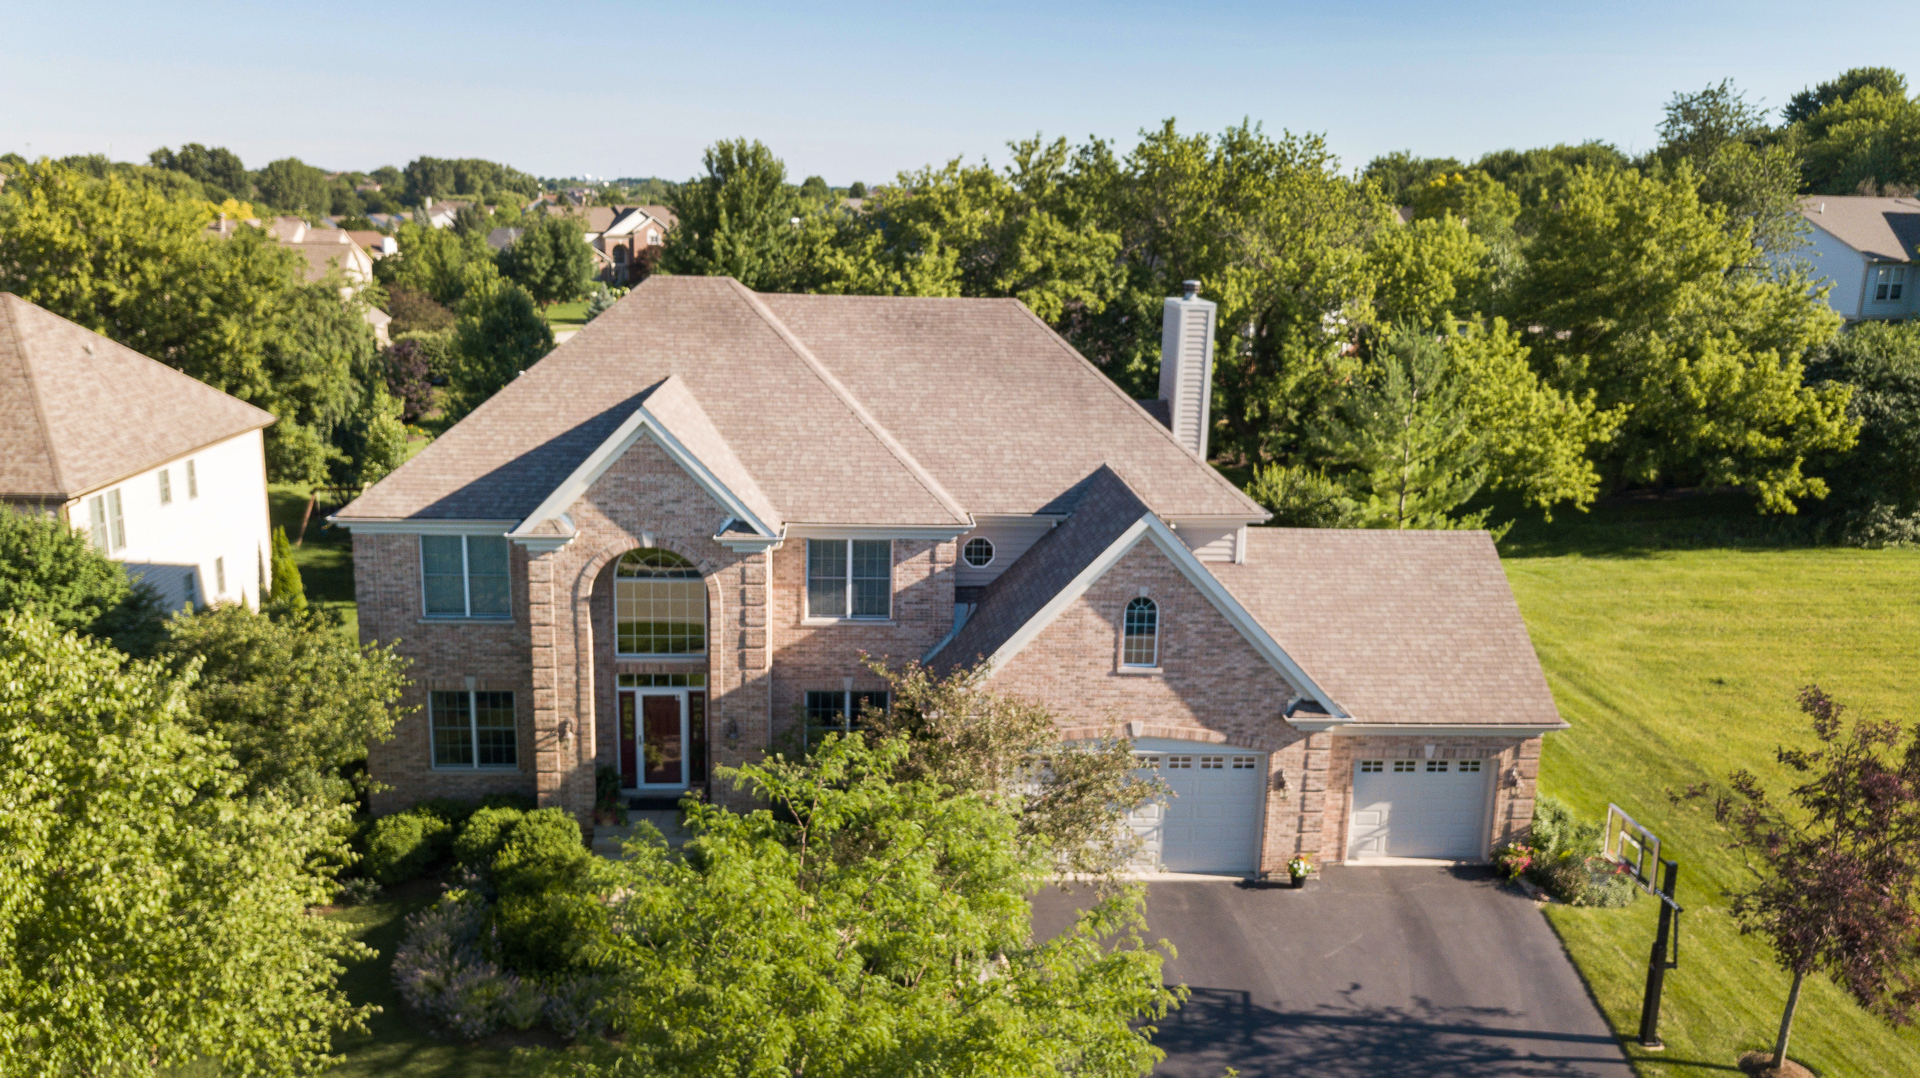 11 Springbrook Lane, Algonquin in Mc Henry County, IL 60102 Home for Sale